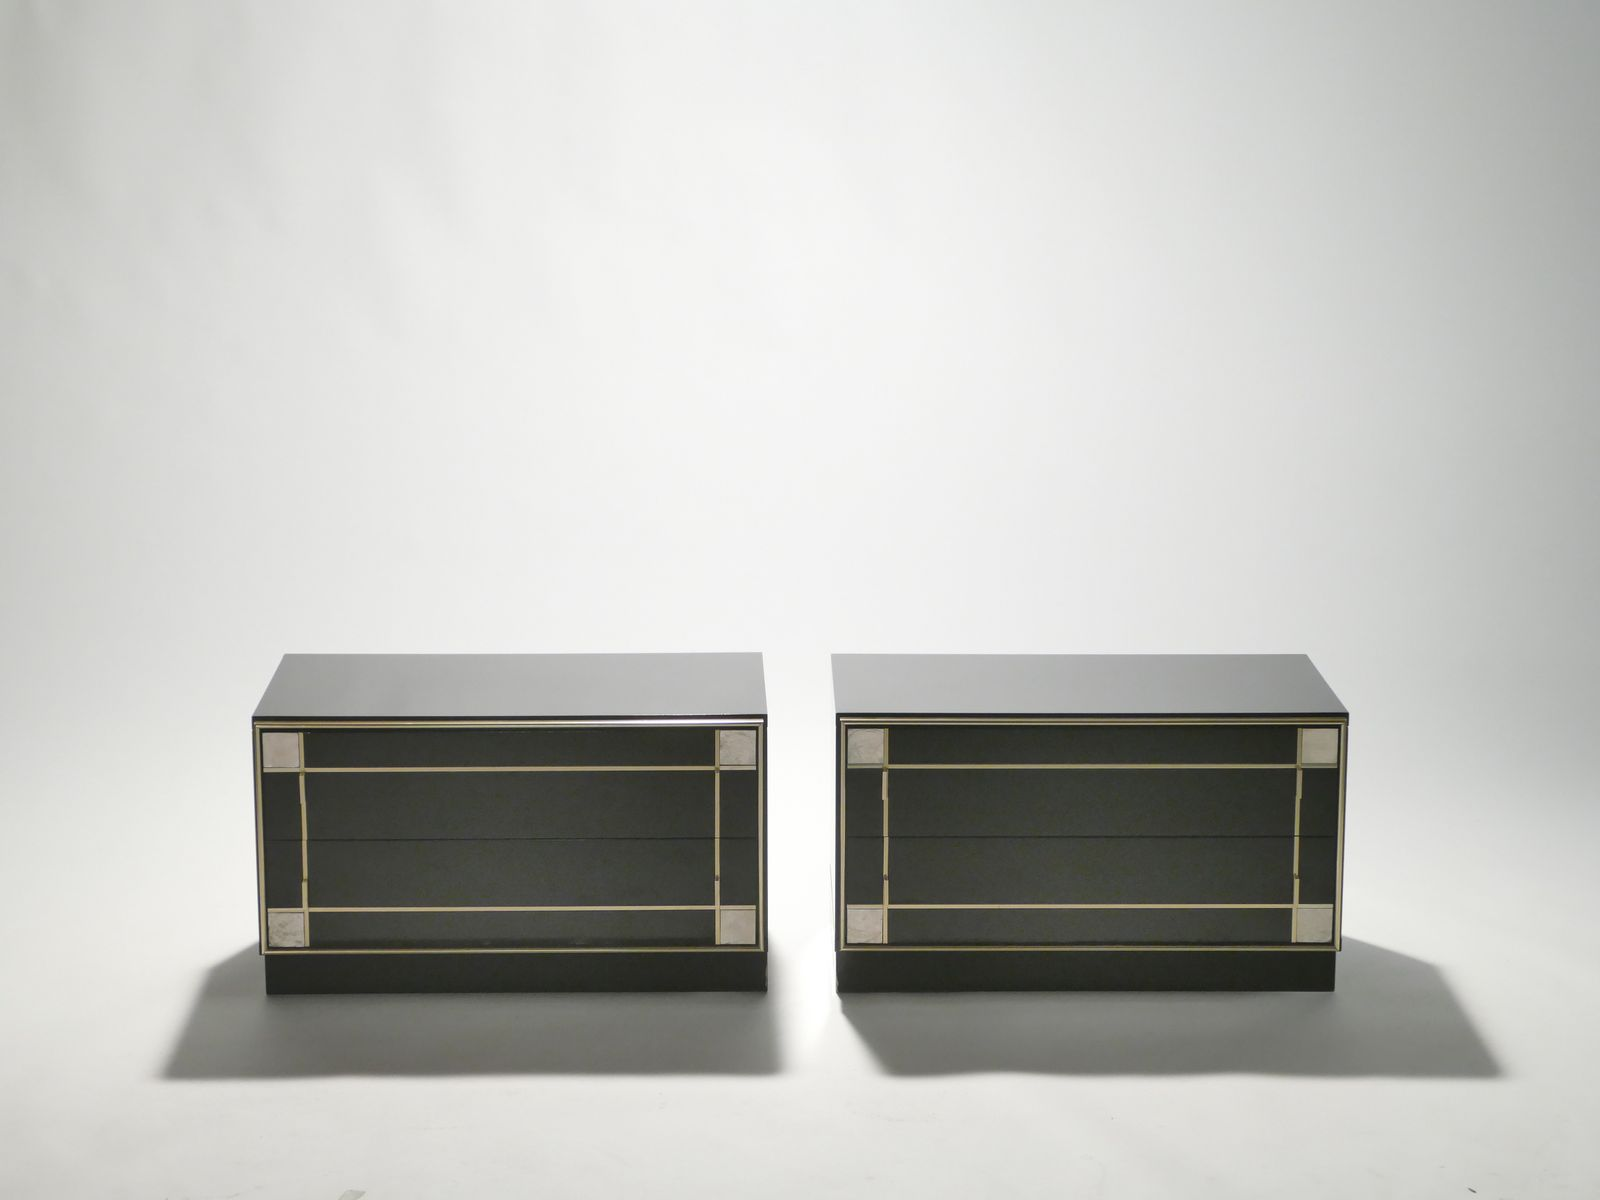 miroir roche bobois finest with miroir roche bobois roche bobois miroir myfrdesign with miroir. Black Bedroom Furniture Sets. Home Design Ideas